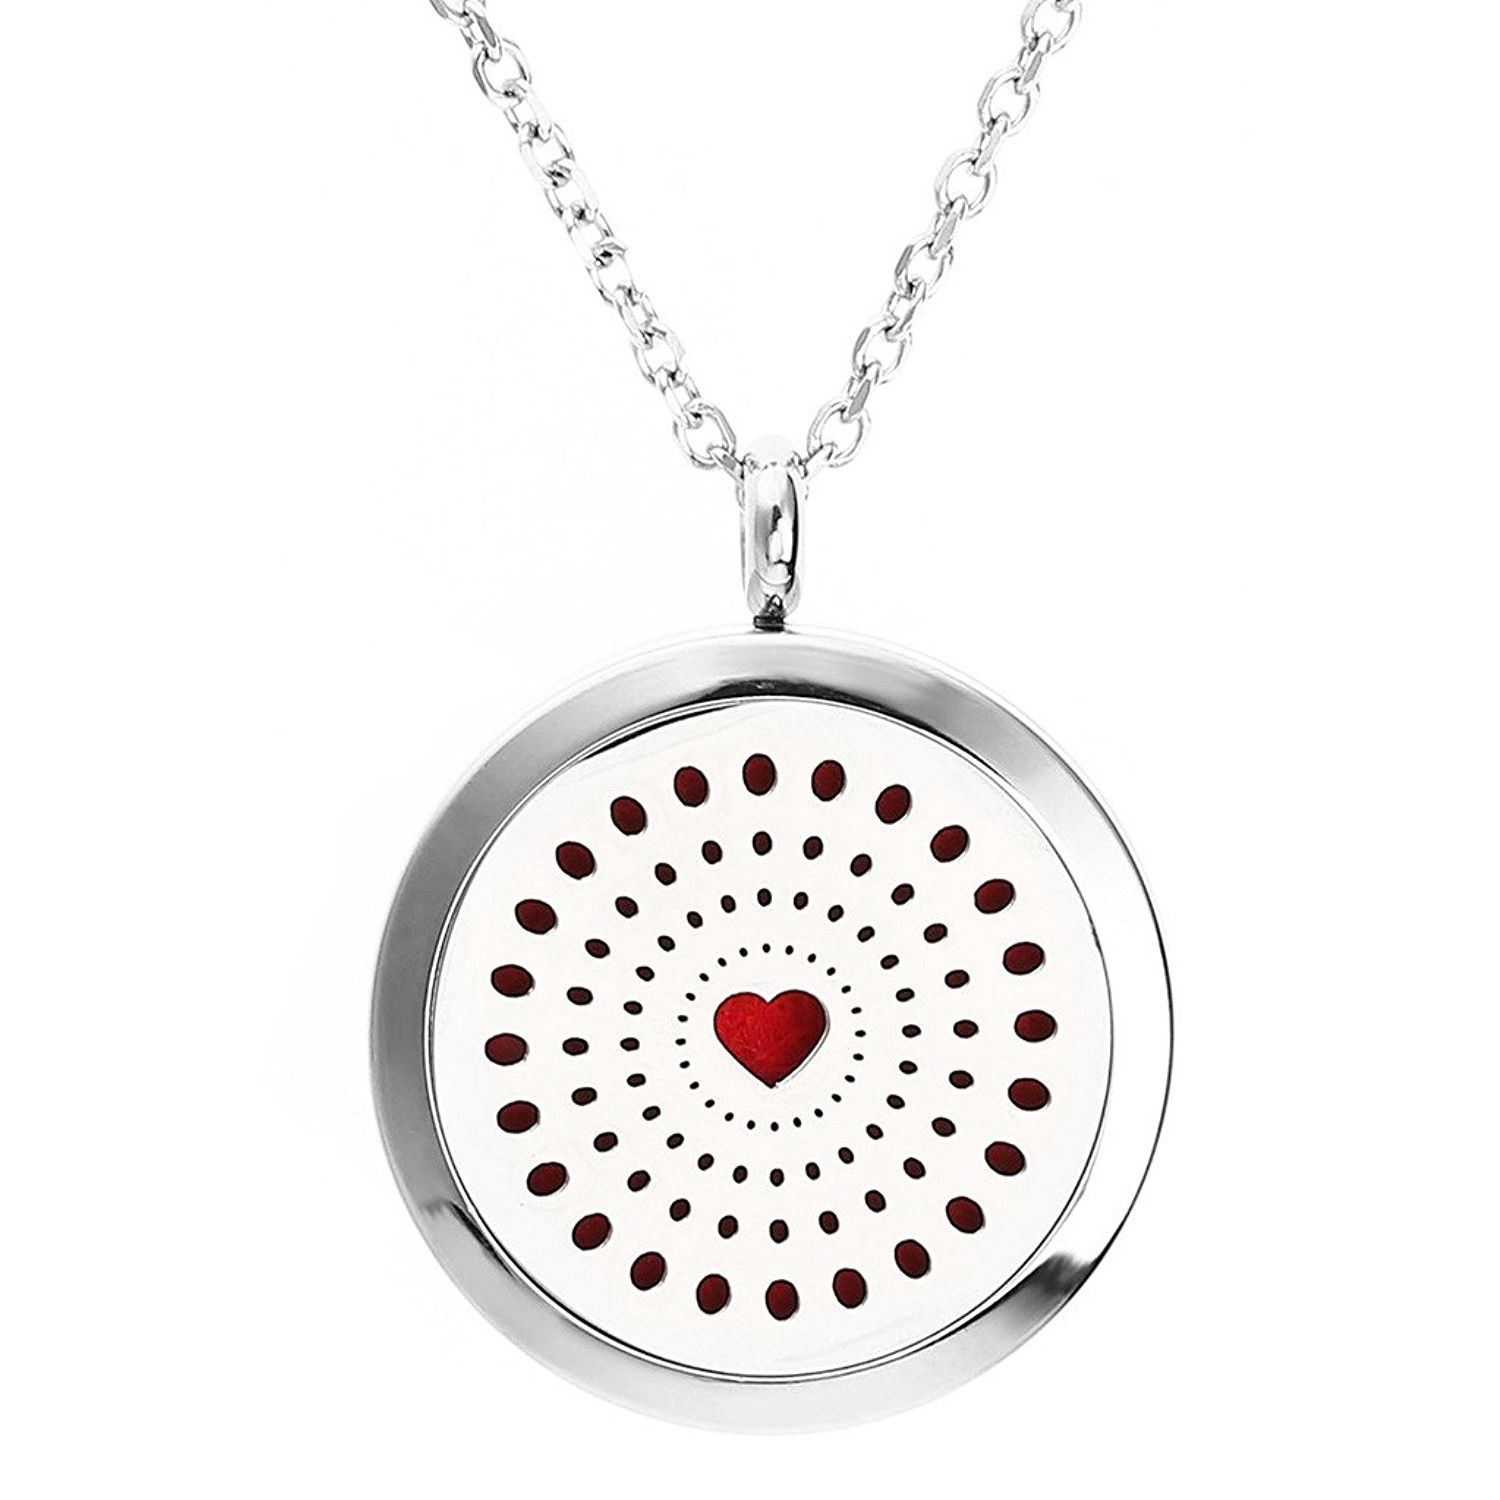 Aromatherapy Essential Oil Diffuser Necklace 316L Stainless Steel Locket Pendant Ring with & 6 Felt Pads Love is infinite